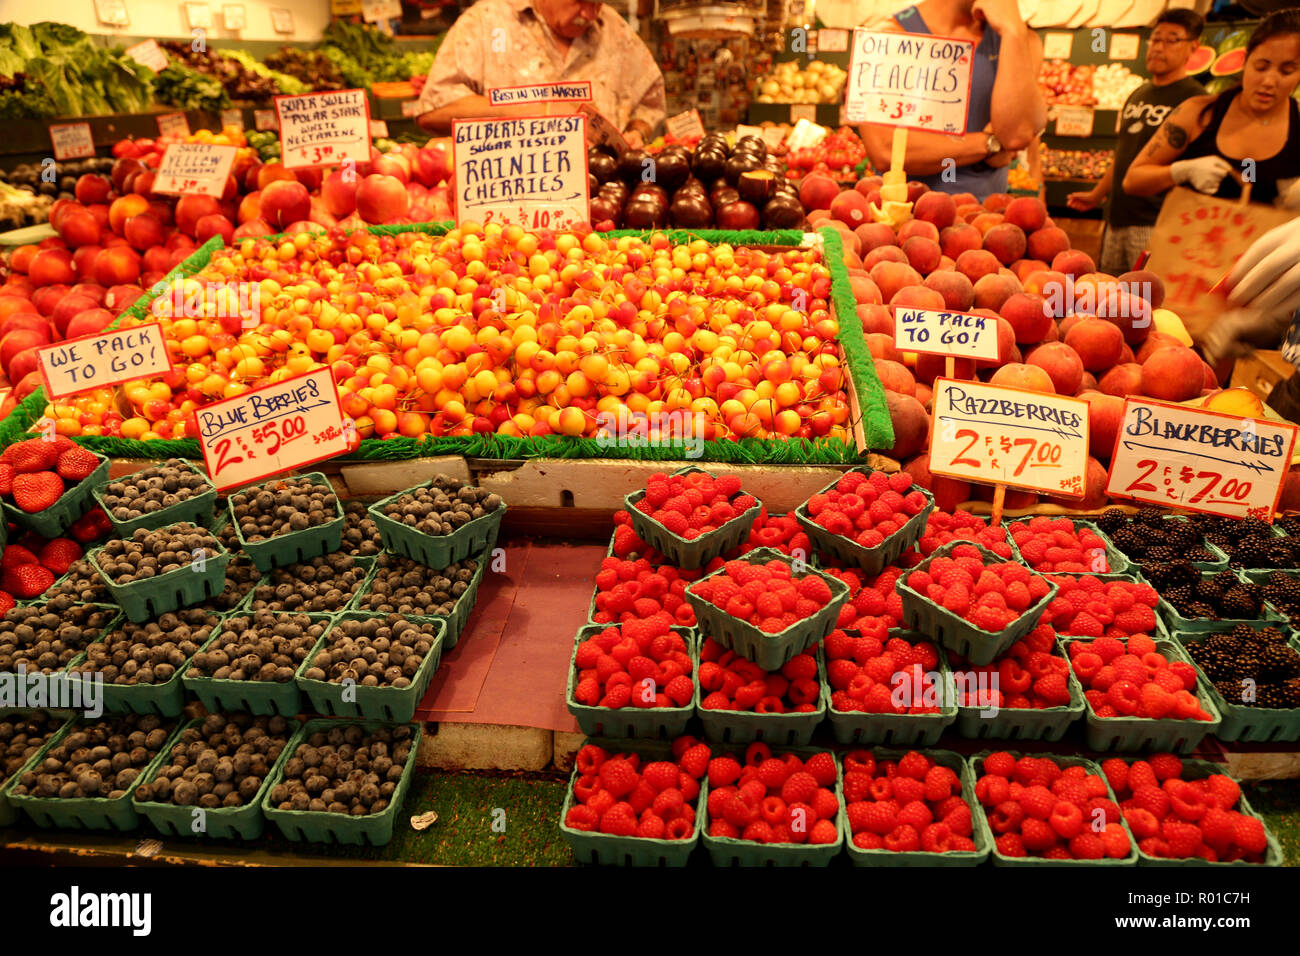 Fruit stand - Stock Image